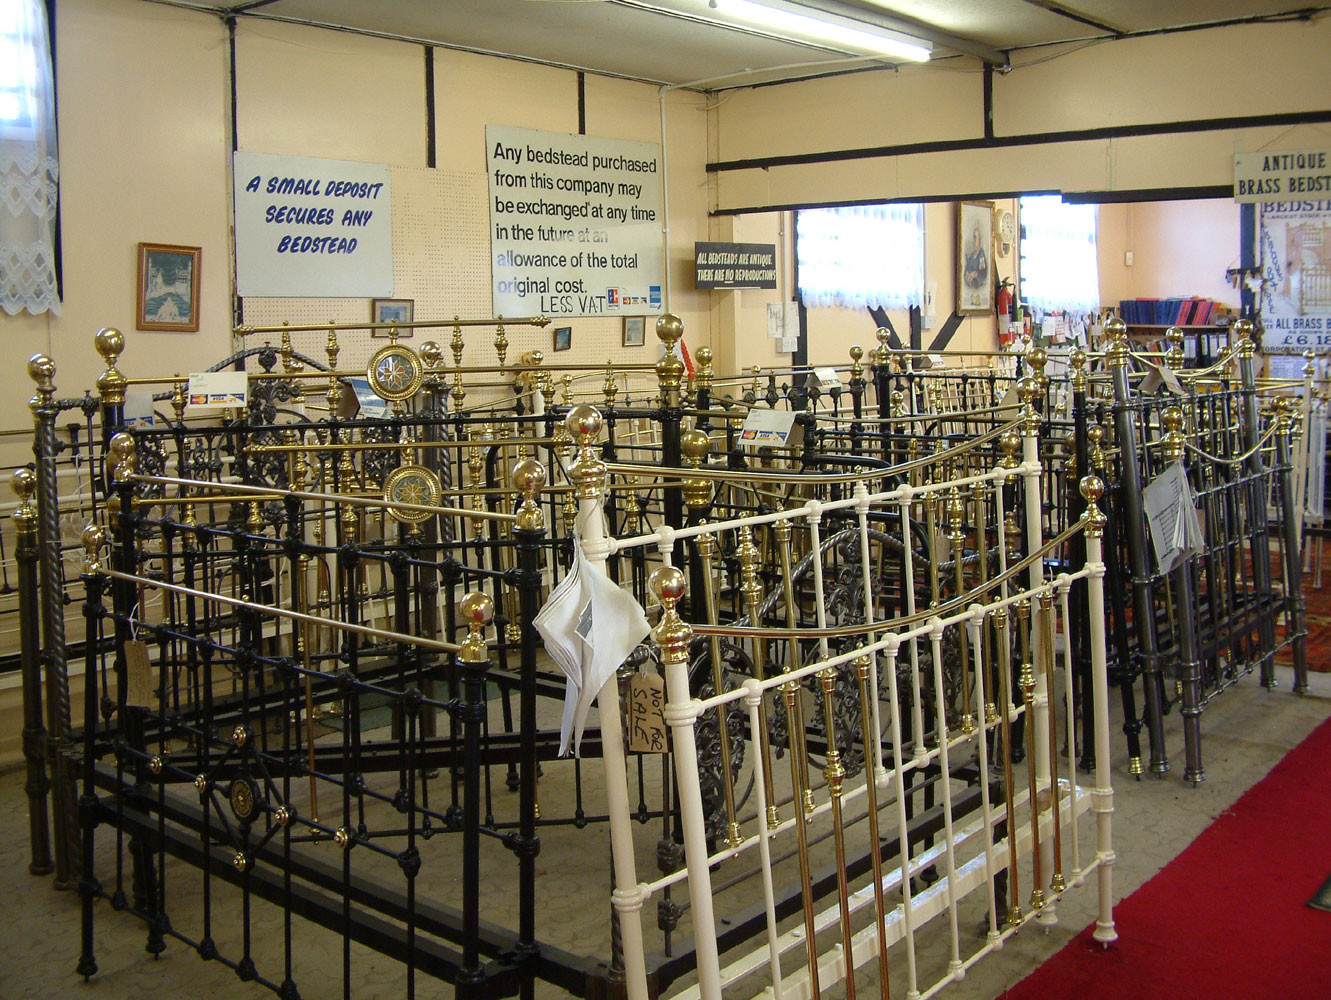 Picture of: Antique Brass Bedsteads